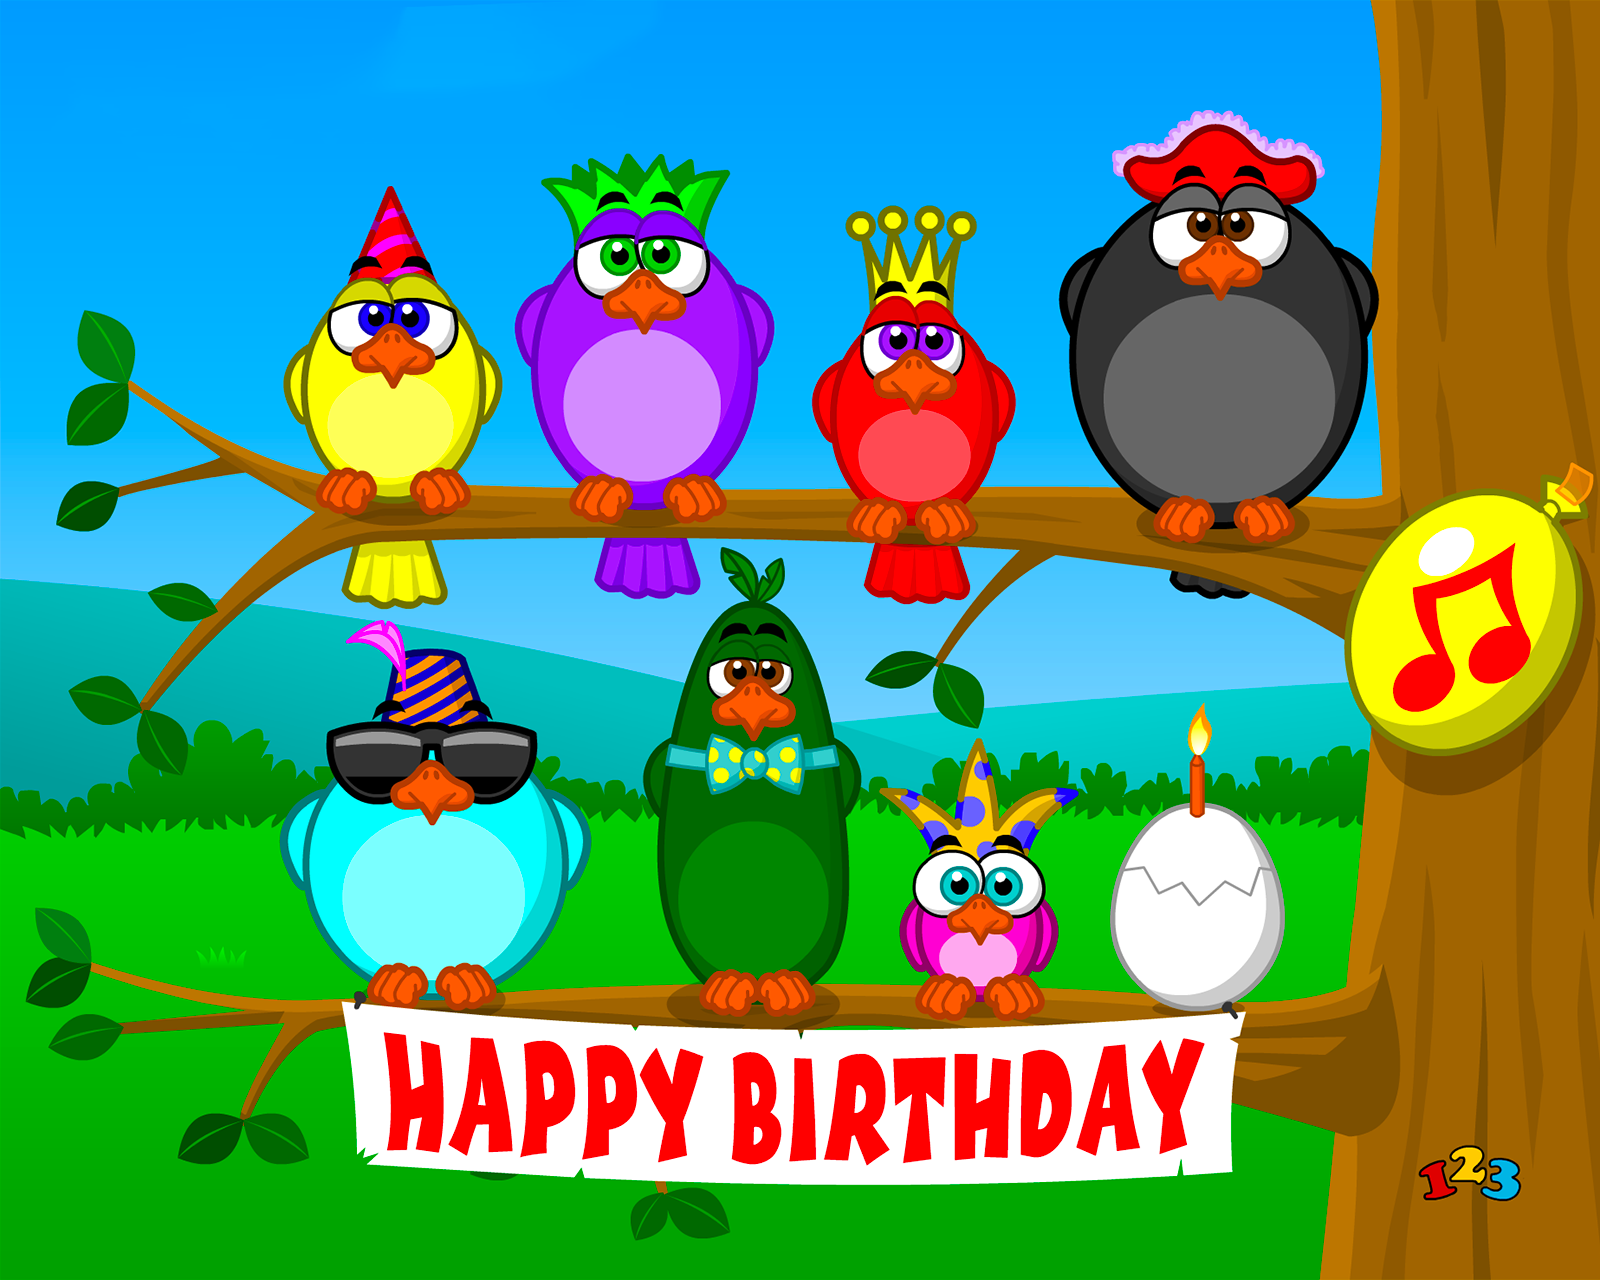 Singing birds - Birthday - send free eCards from 123cards.com